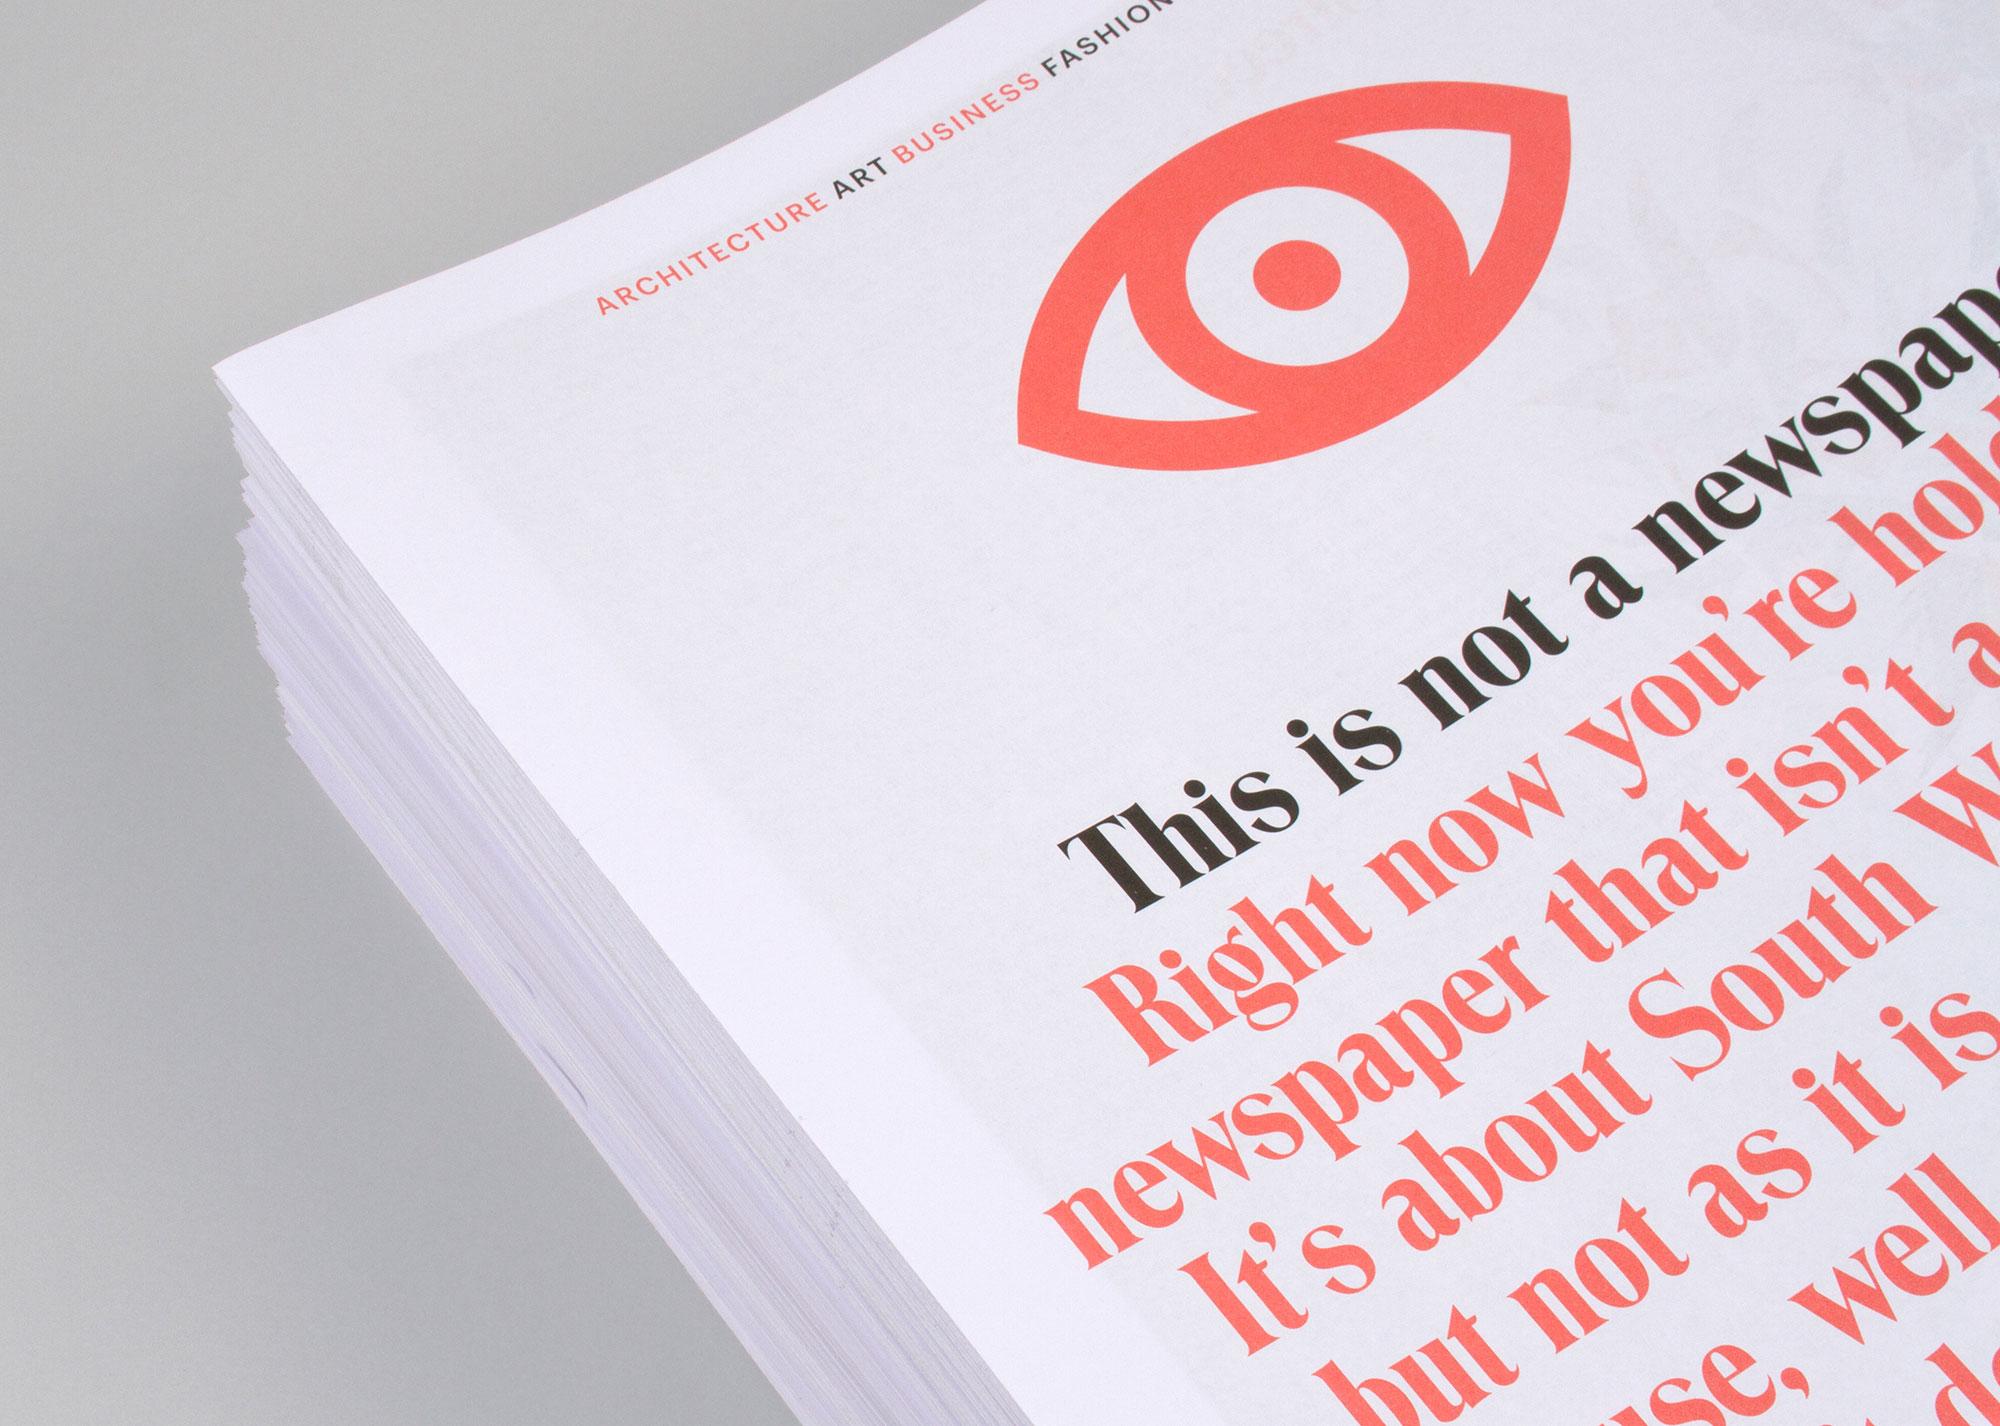 Cover image: This Is Not A Newspaper